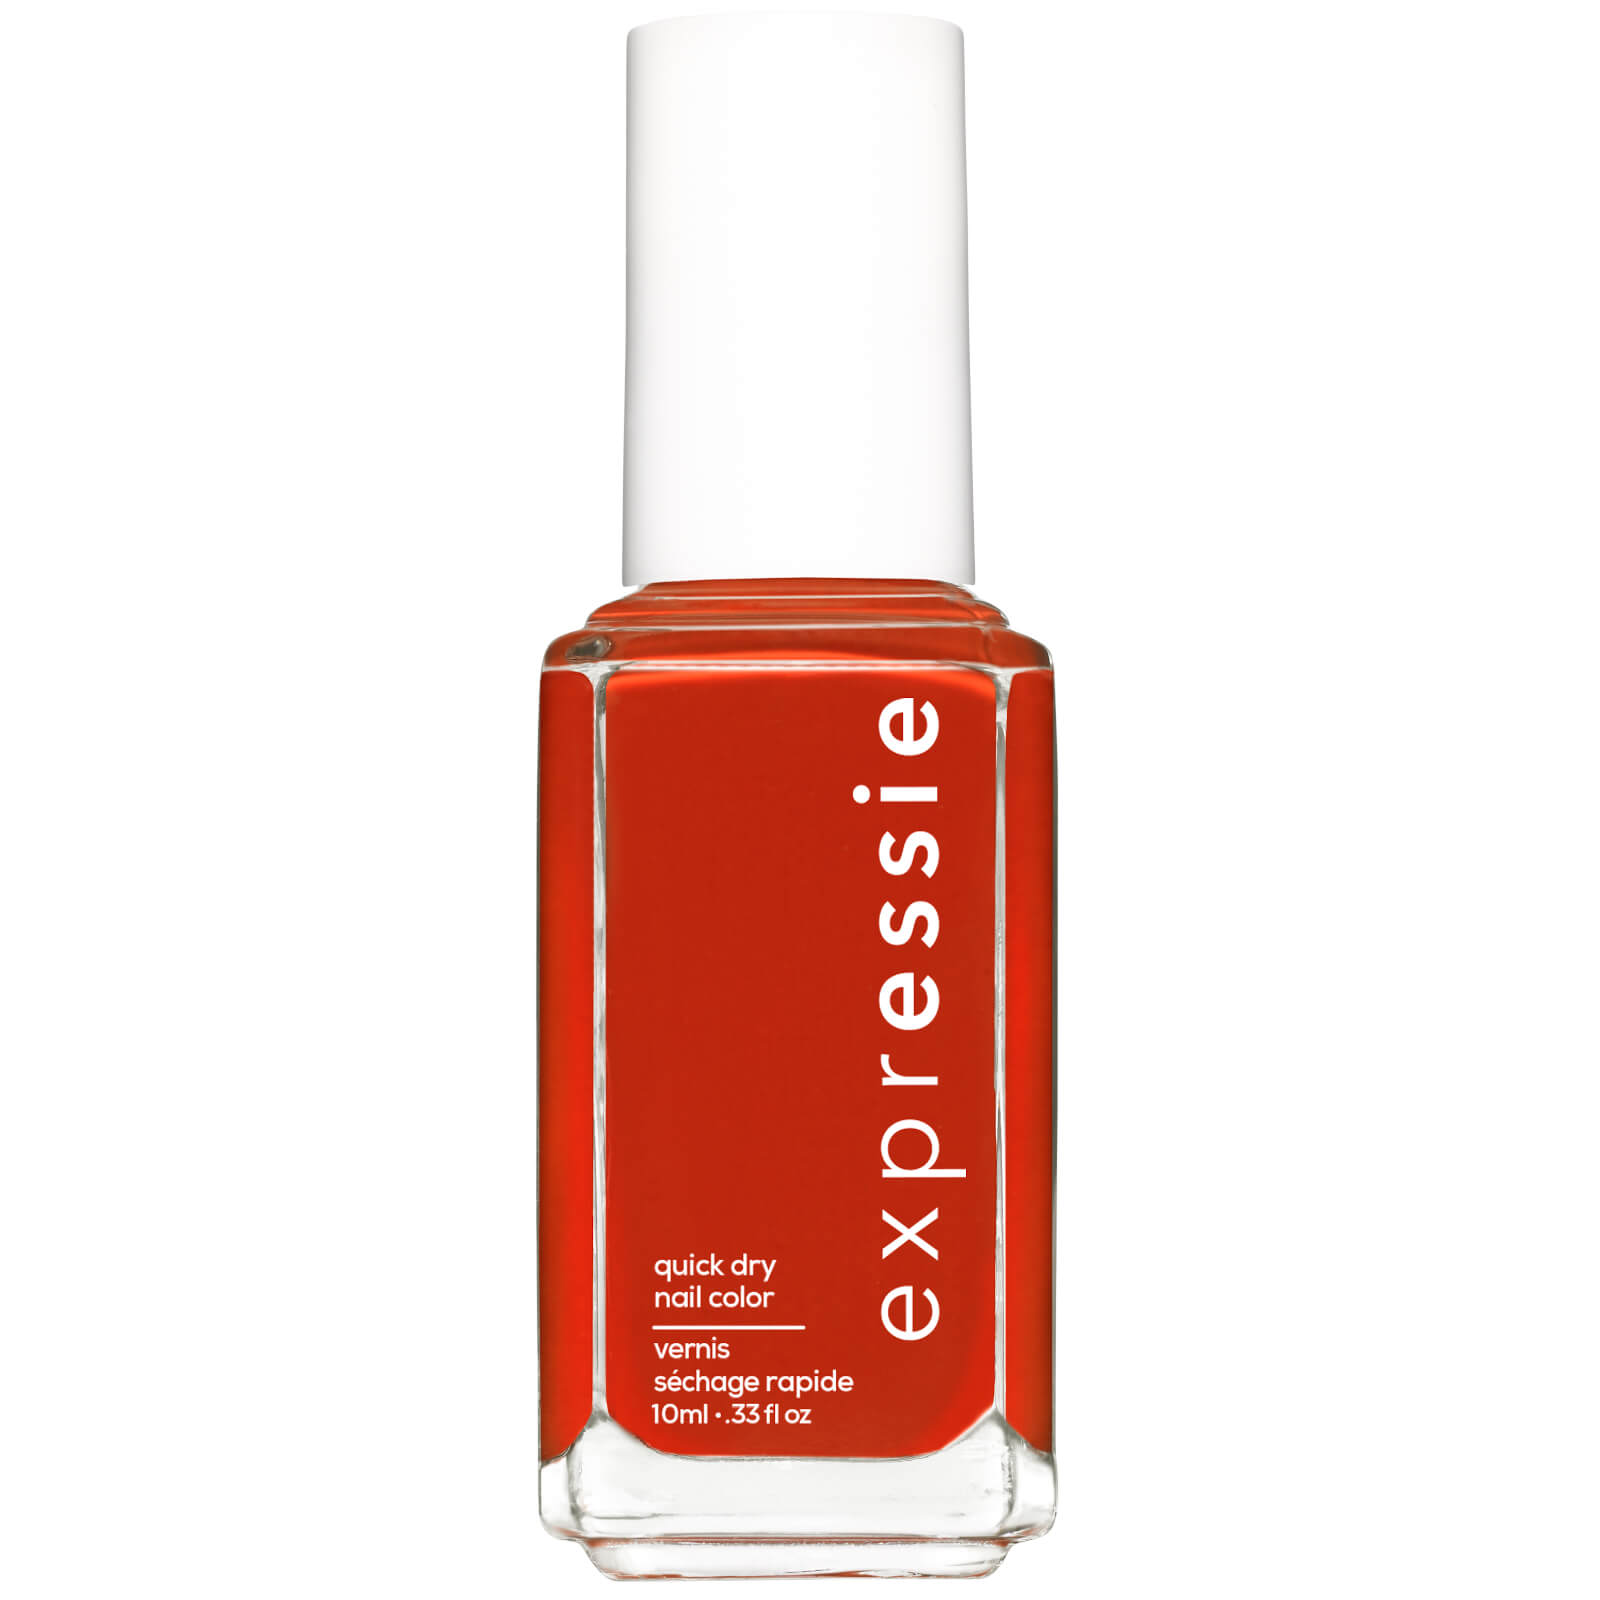 essie Expressie Quick Dry Formula Chip Resistant Nail Polish 10ml (Various Shades) - 180 Bold & Be Bold